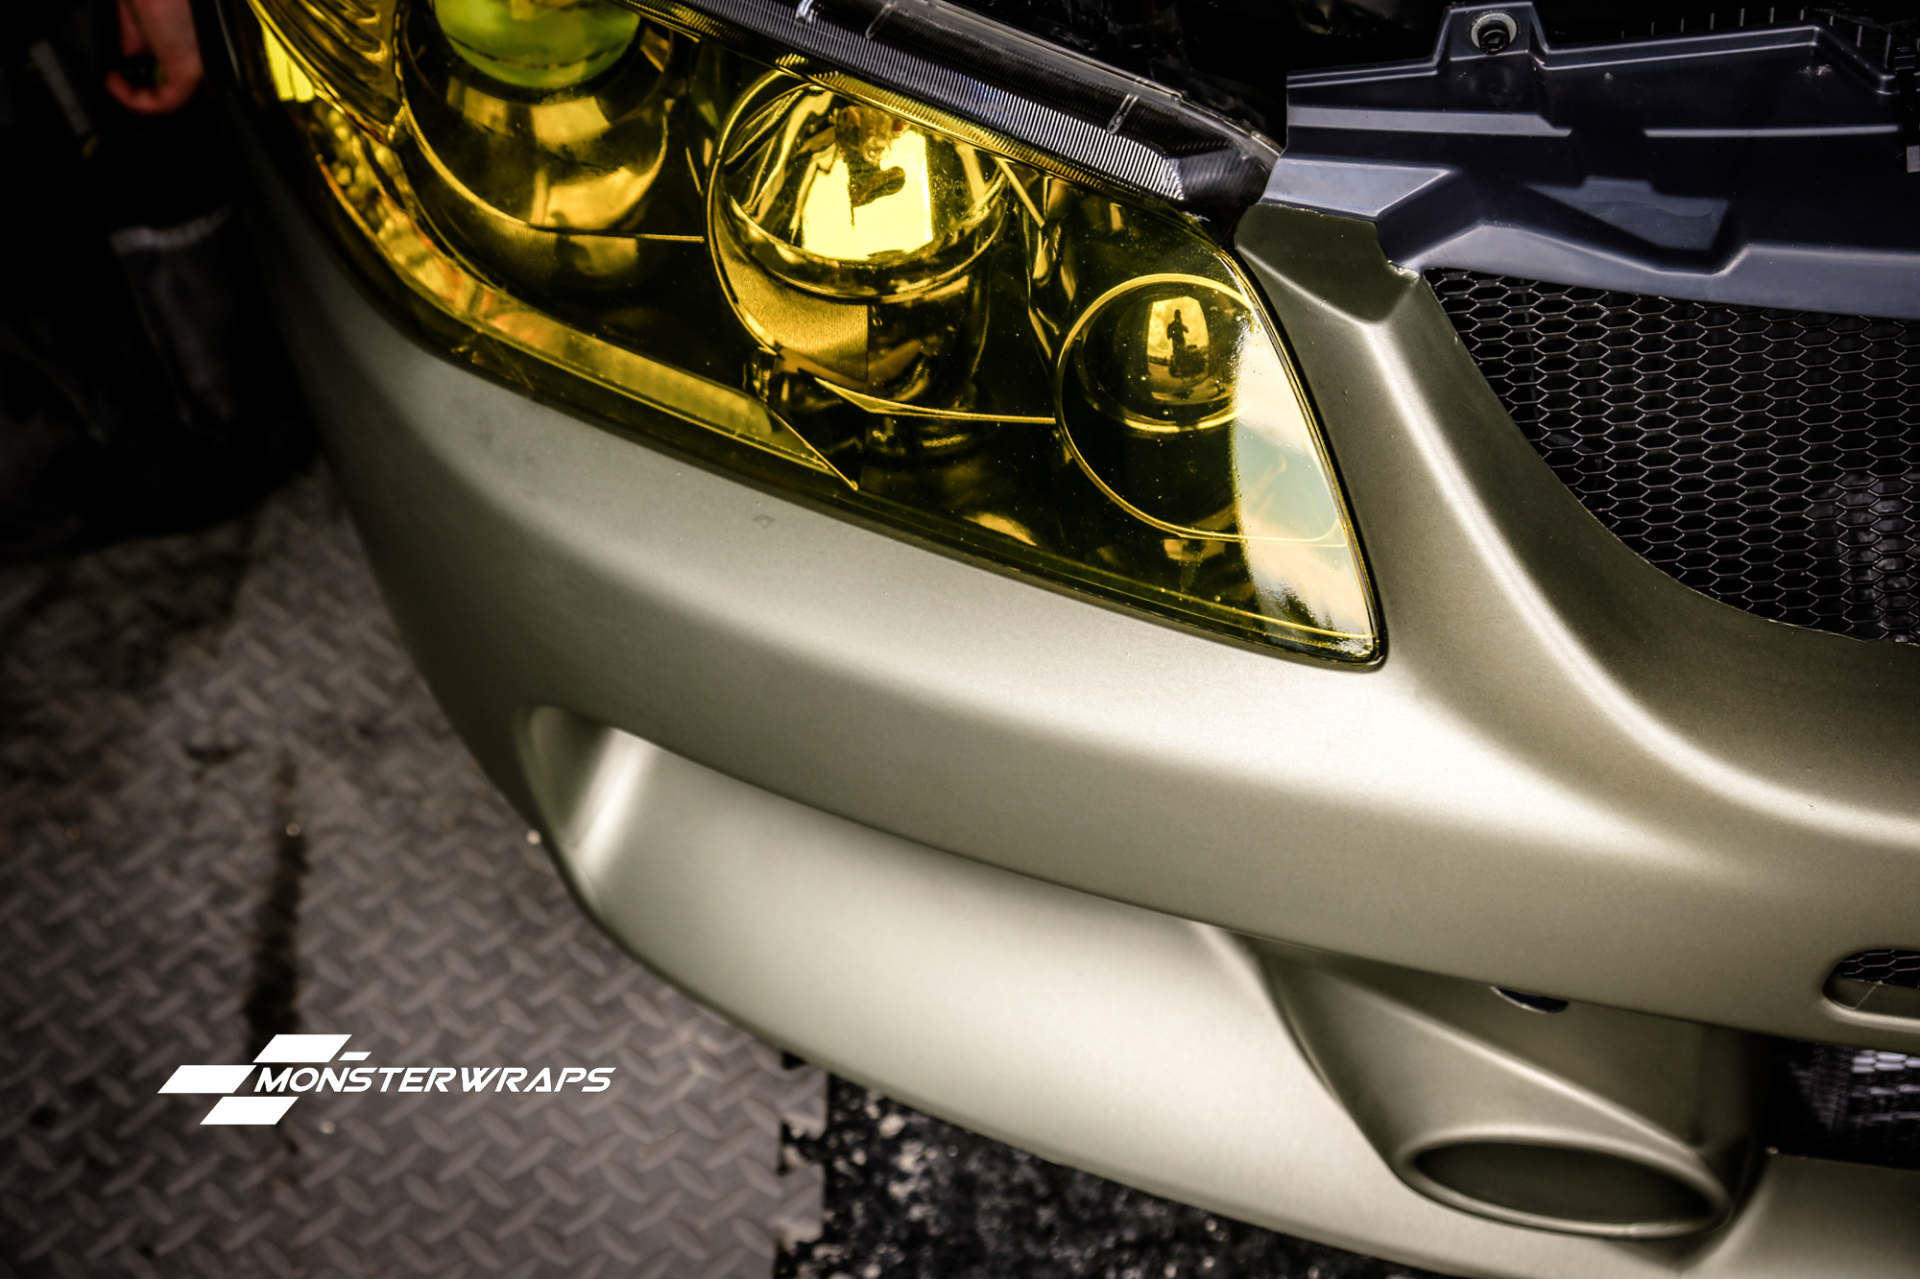 Mitsubishi Evo 9 Midnight Sand Metallic wrap